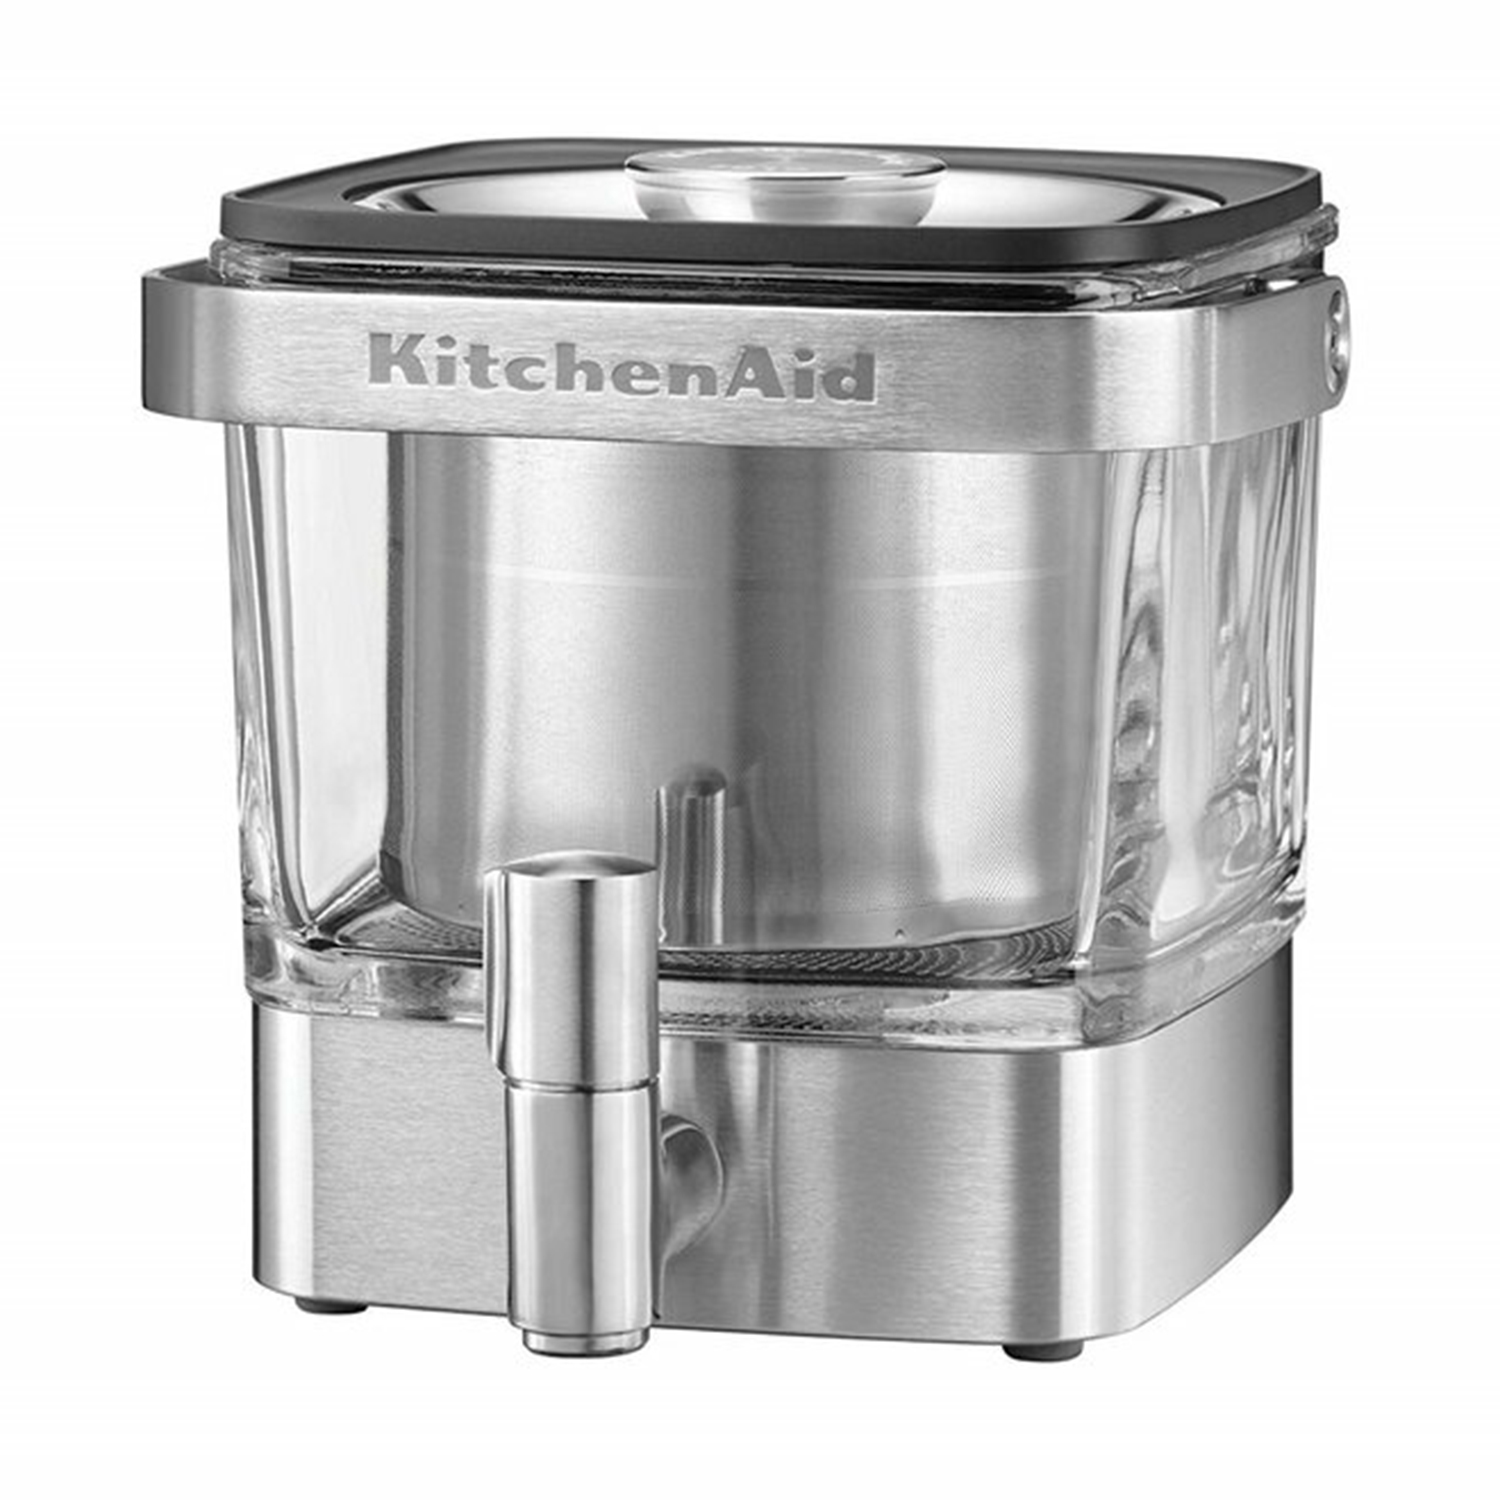 KitchenAid 28-Ounce Stainless Steel Cold Brew Coffee Maker